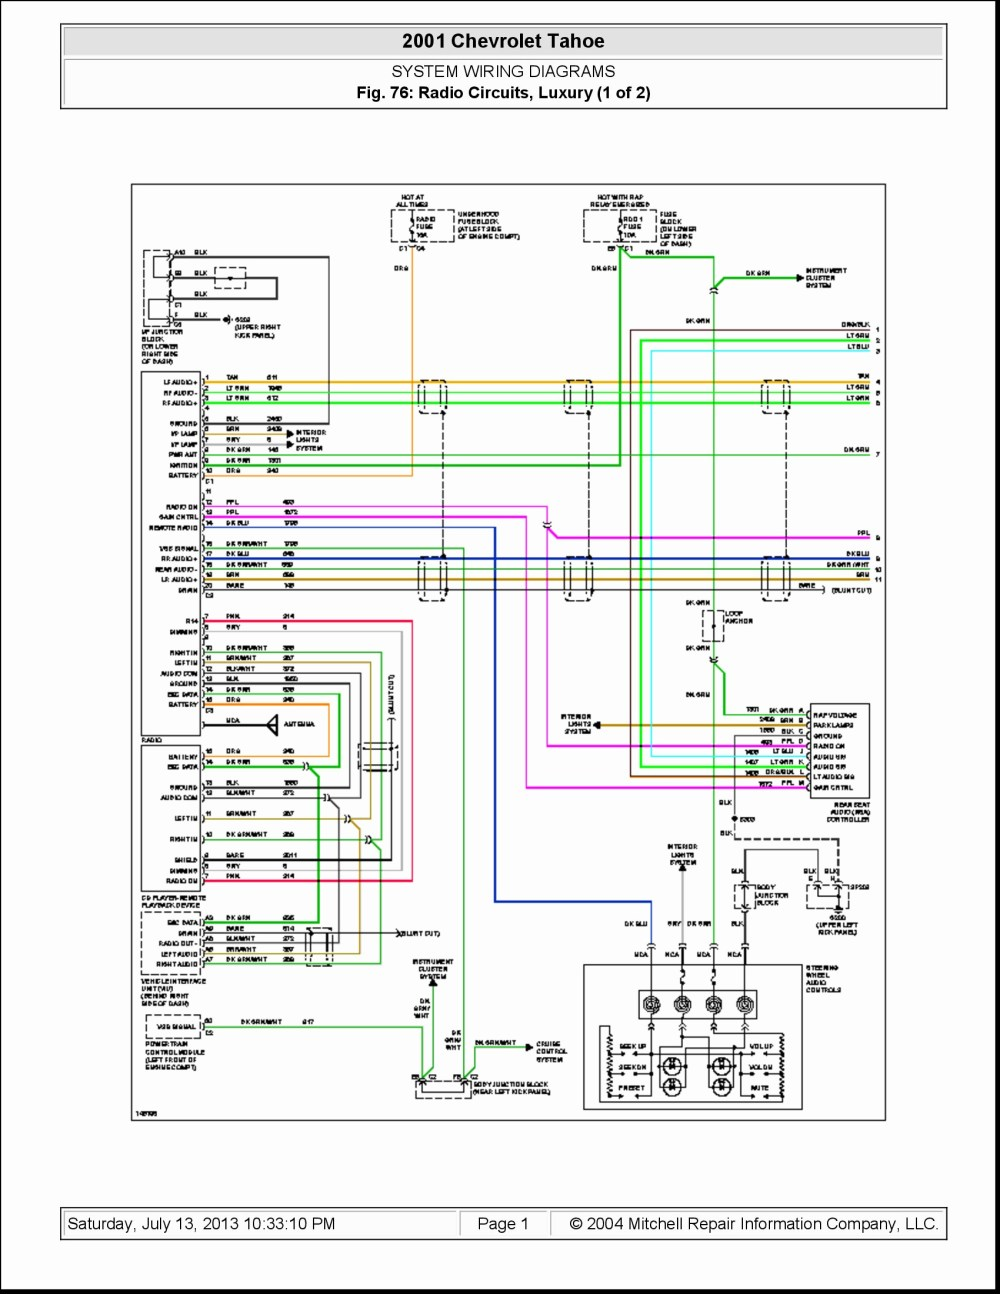 medium resolution of 2005 chevy silverado brake light wiring diagram new 2001 blazer radio wiring diagram 2002 chevy trailblazer